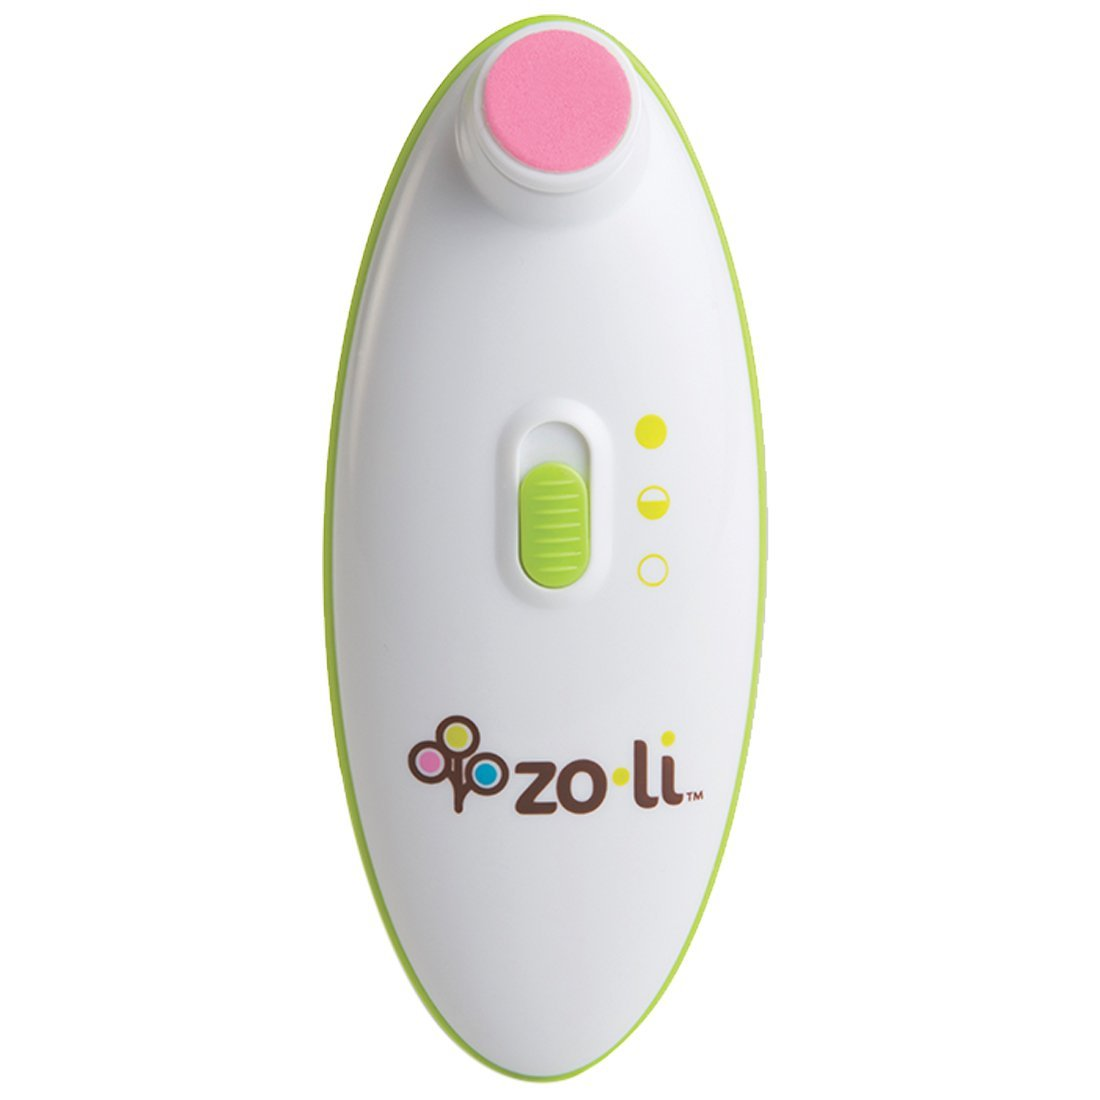 BUZZ-B-electril-nail-trimmer